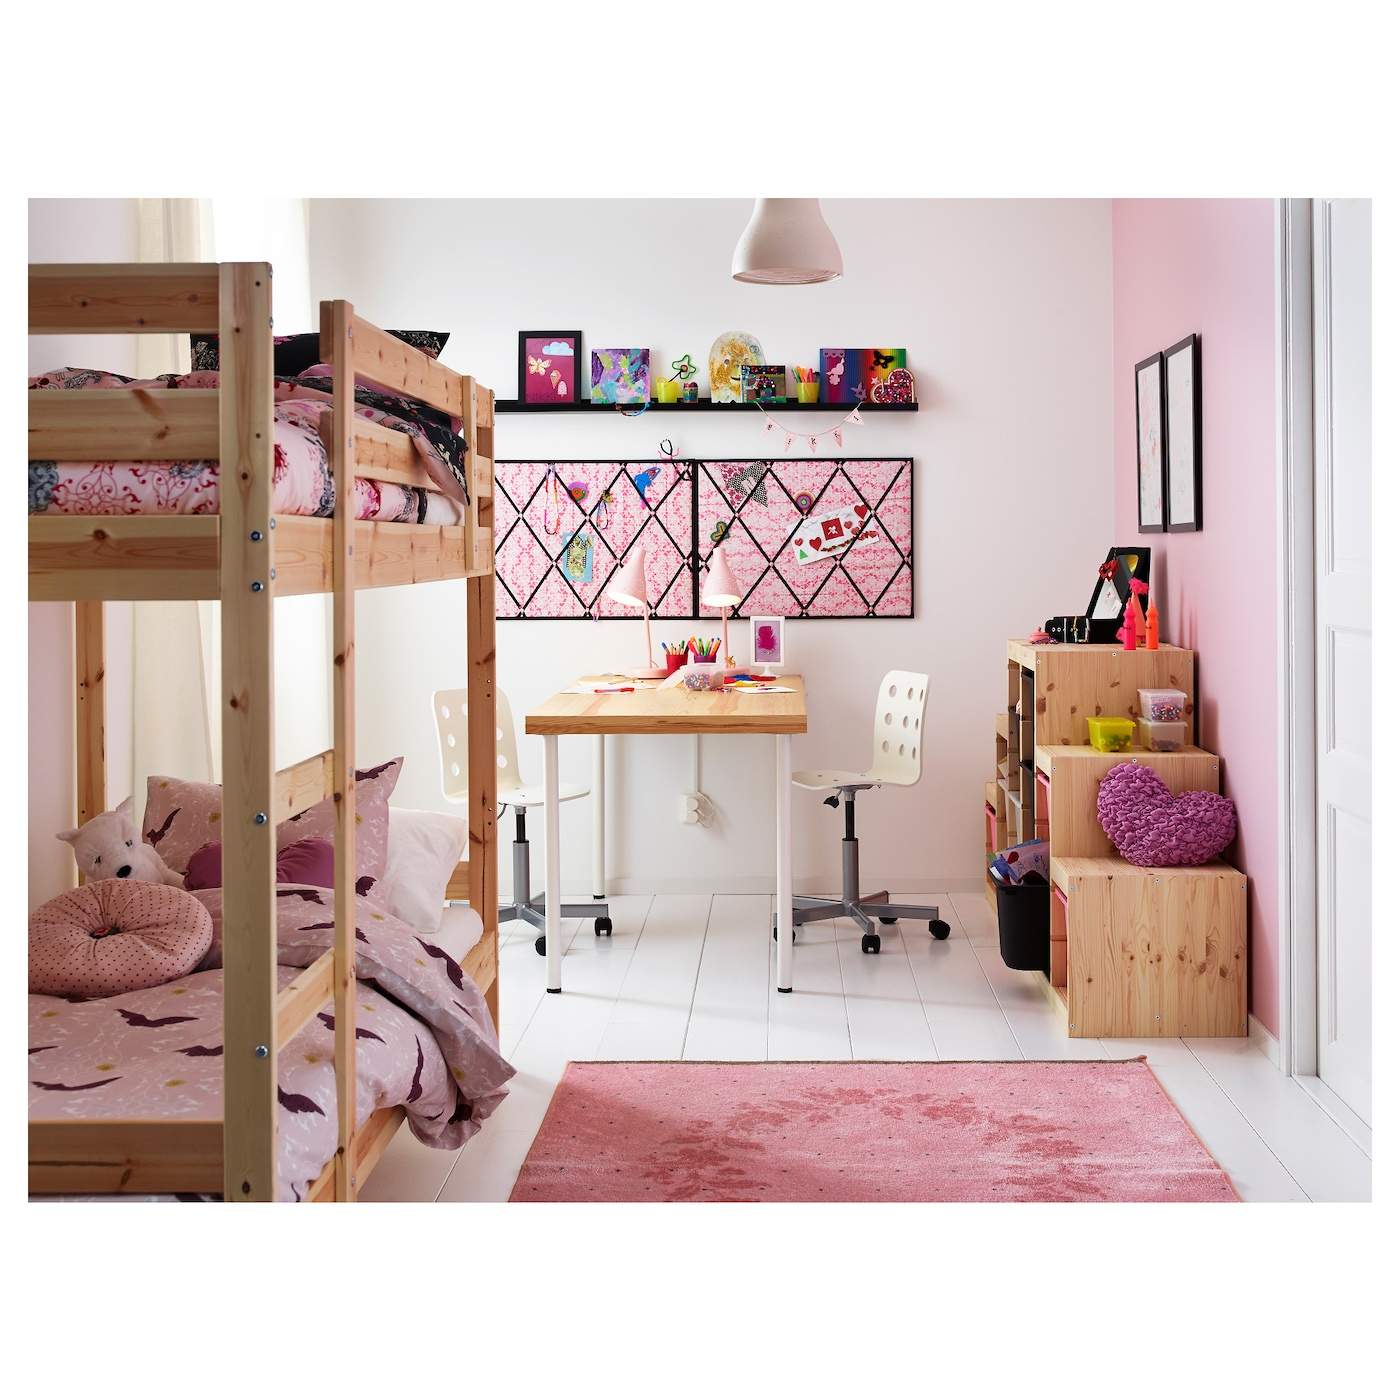 IKEA MYDAL bunk bed frame Made of solid wood, which is a hardwearing and warm natural material.